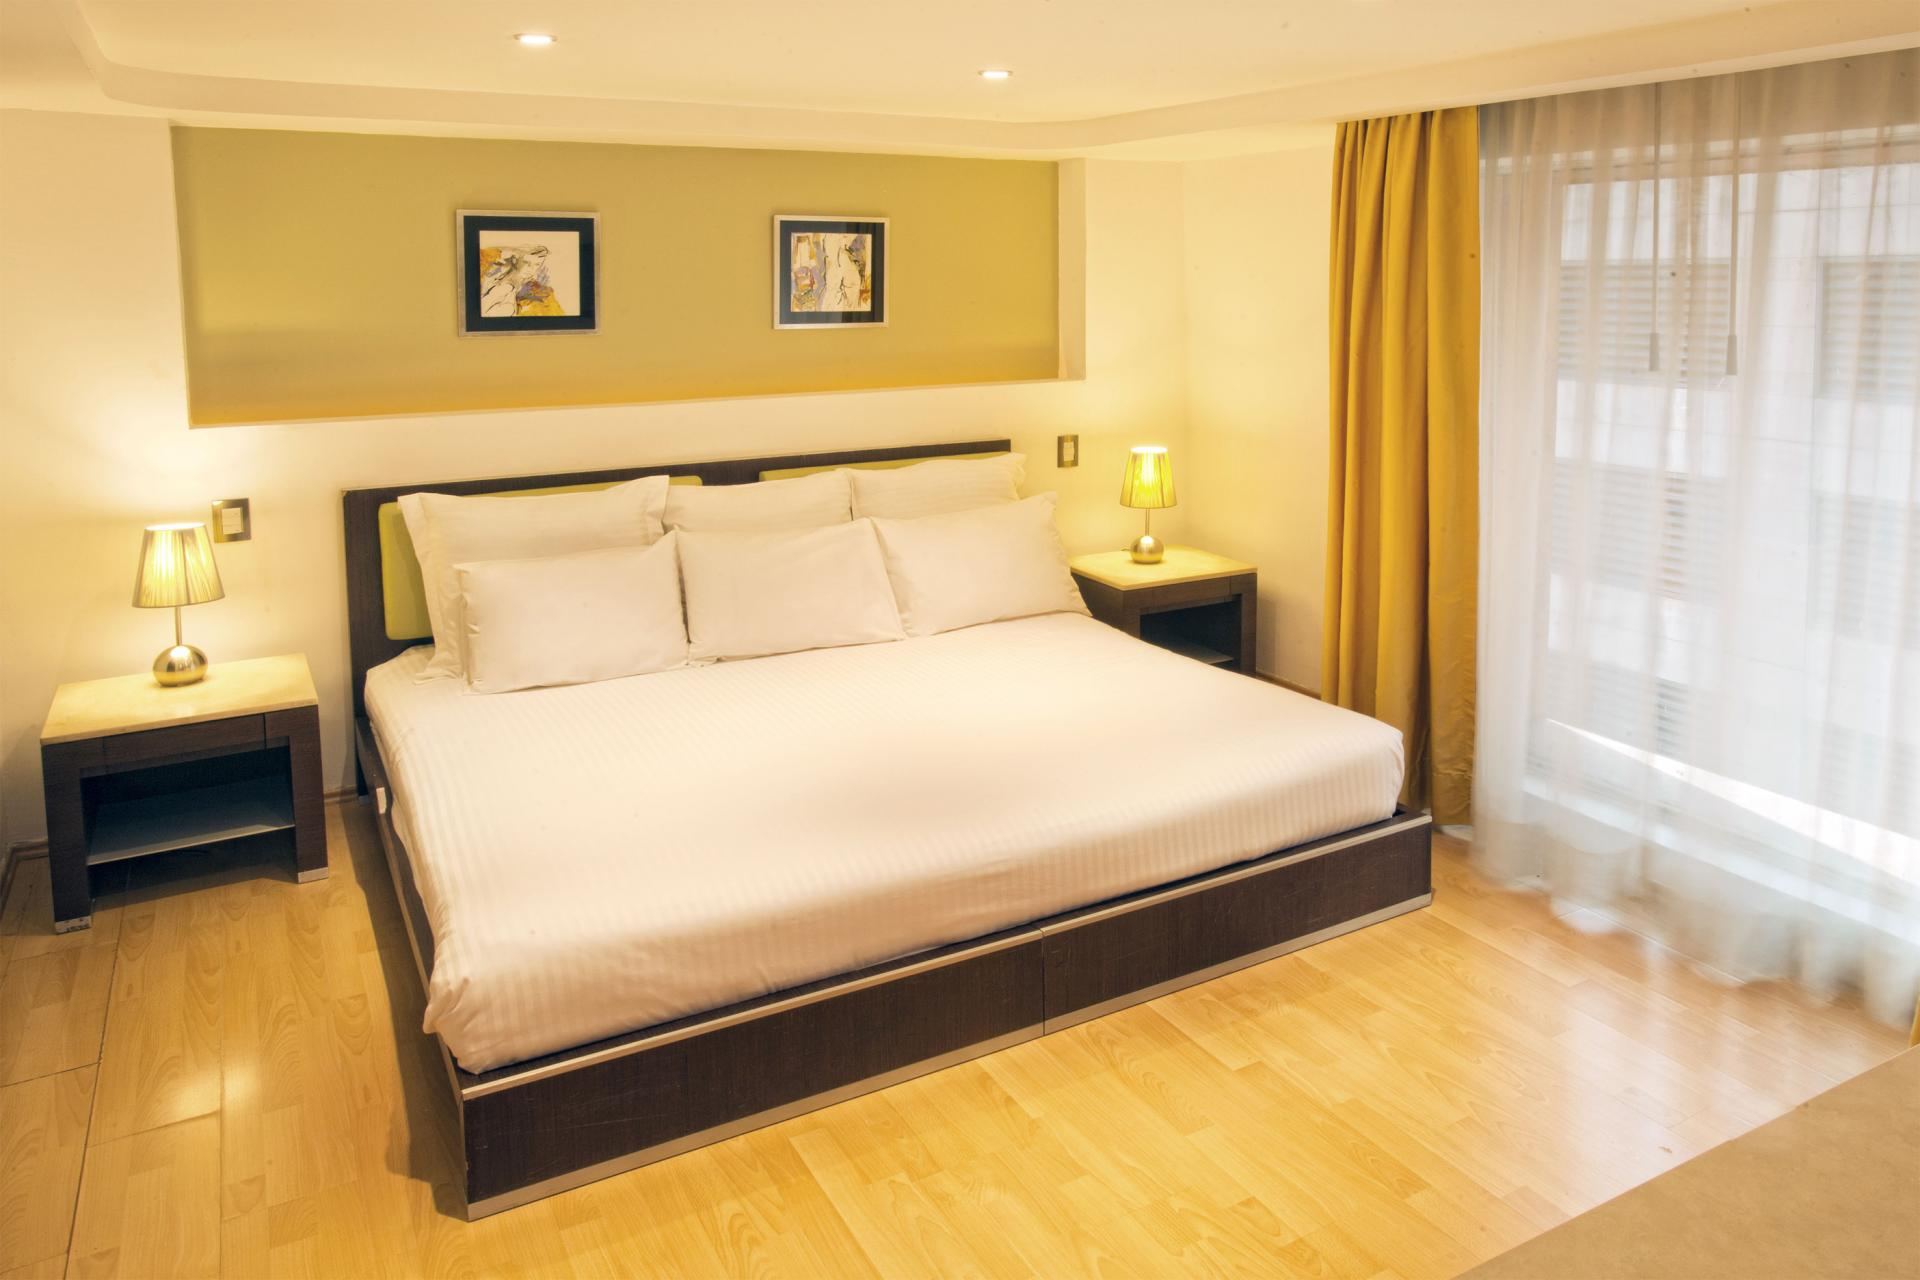 King size bed at Grand Chapultepec Residencial - Citybase Apartments